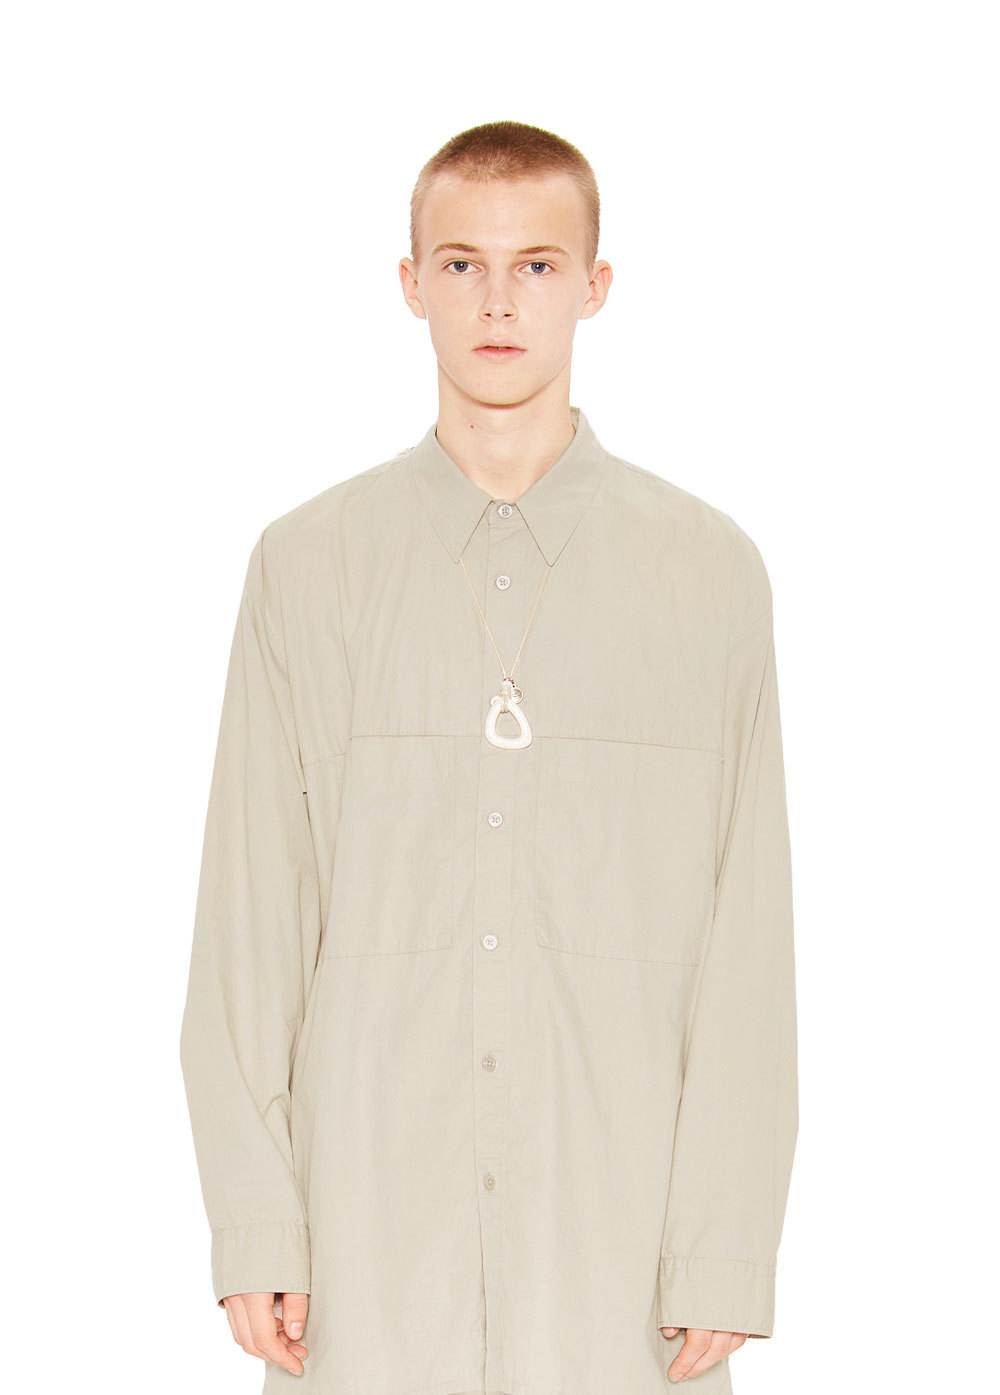 TWO POCKET LONG SHIRT light beige